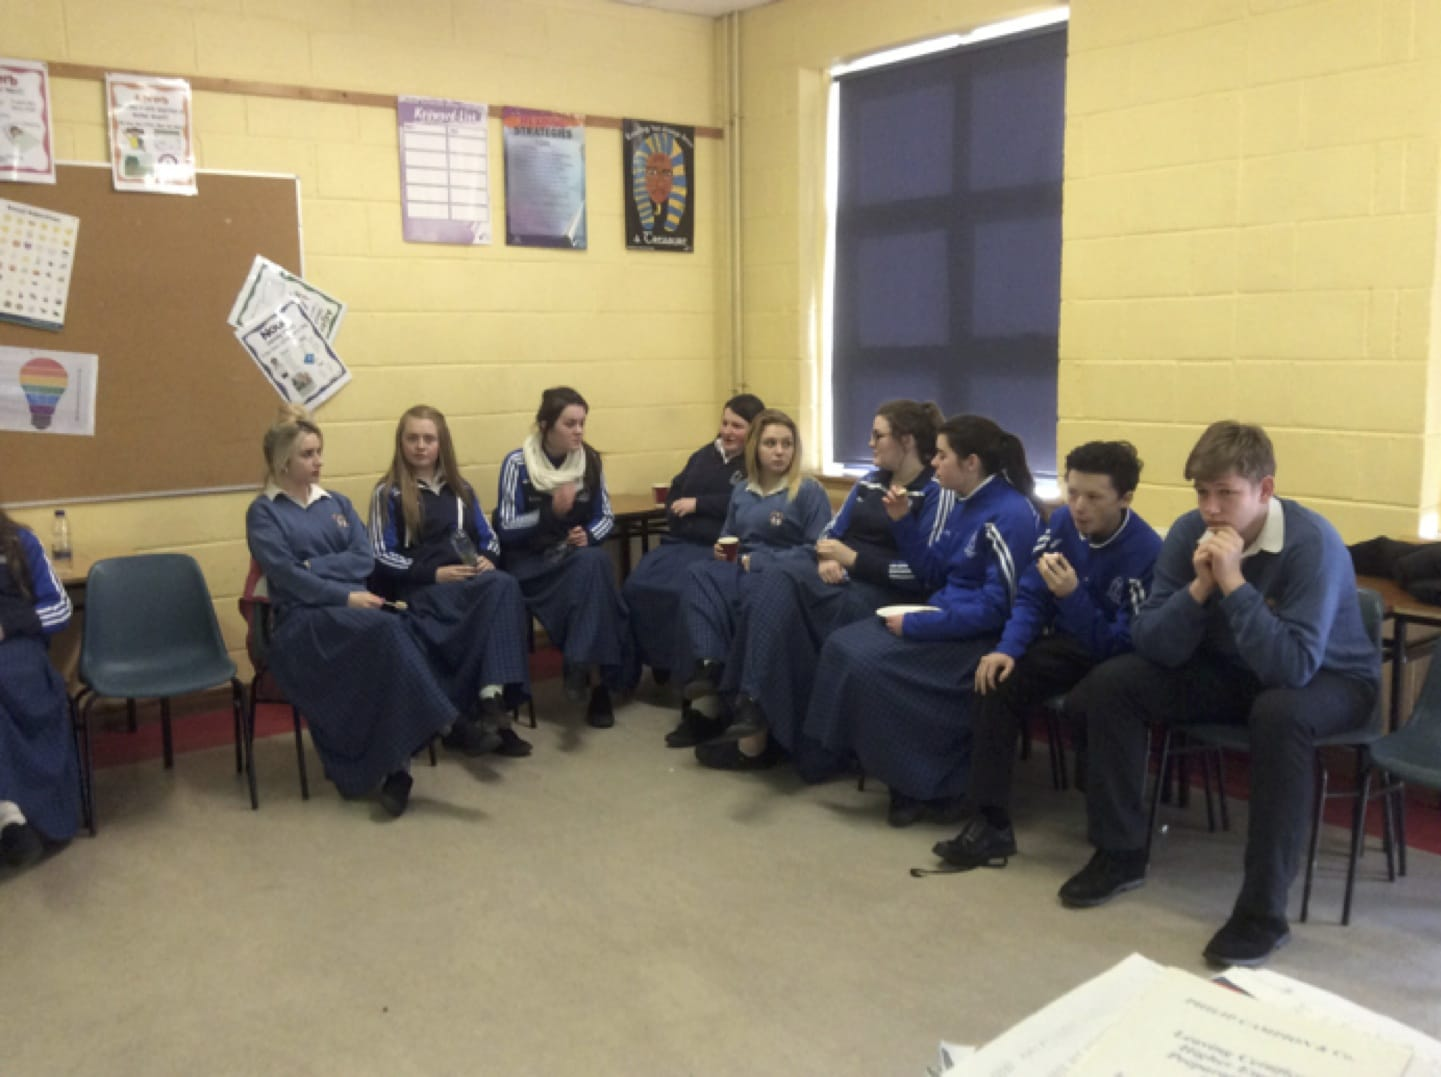 March 2017: Desmond College 5th year students ag caint gaeilge during Desmond College's annual seachtain na gaeilge